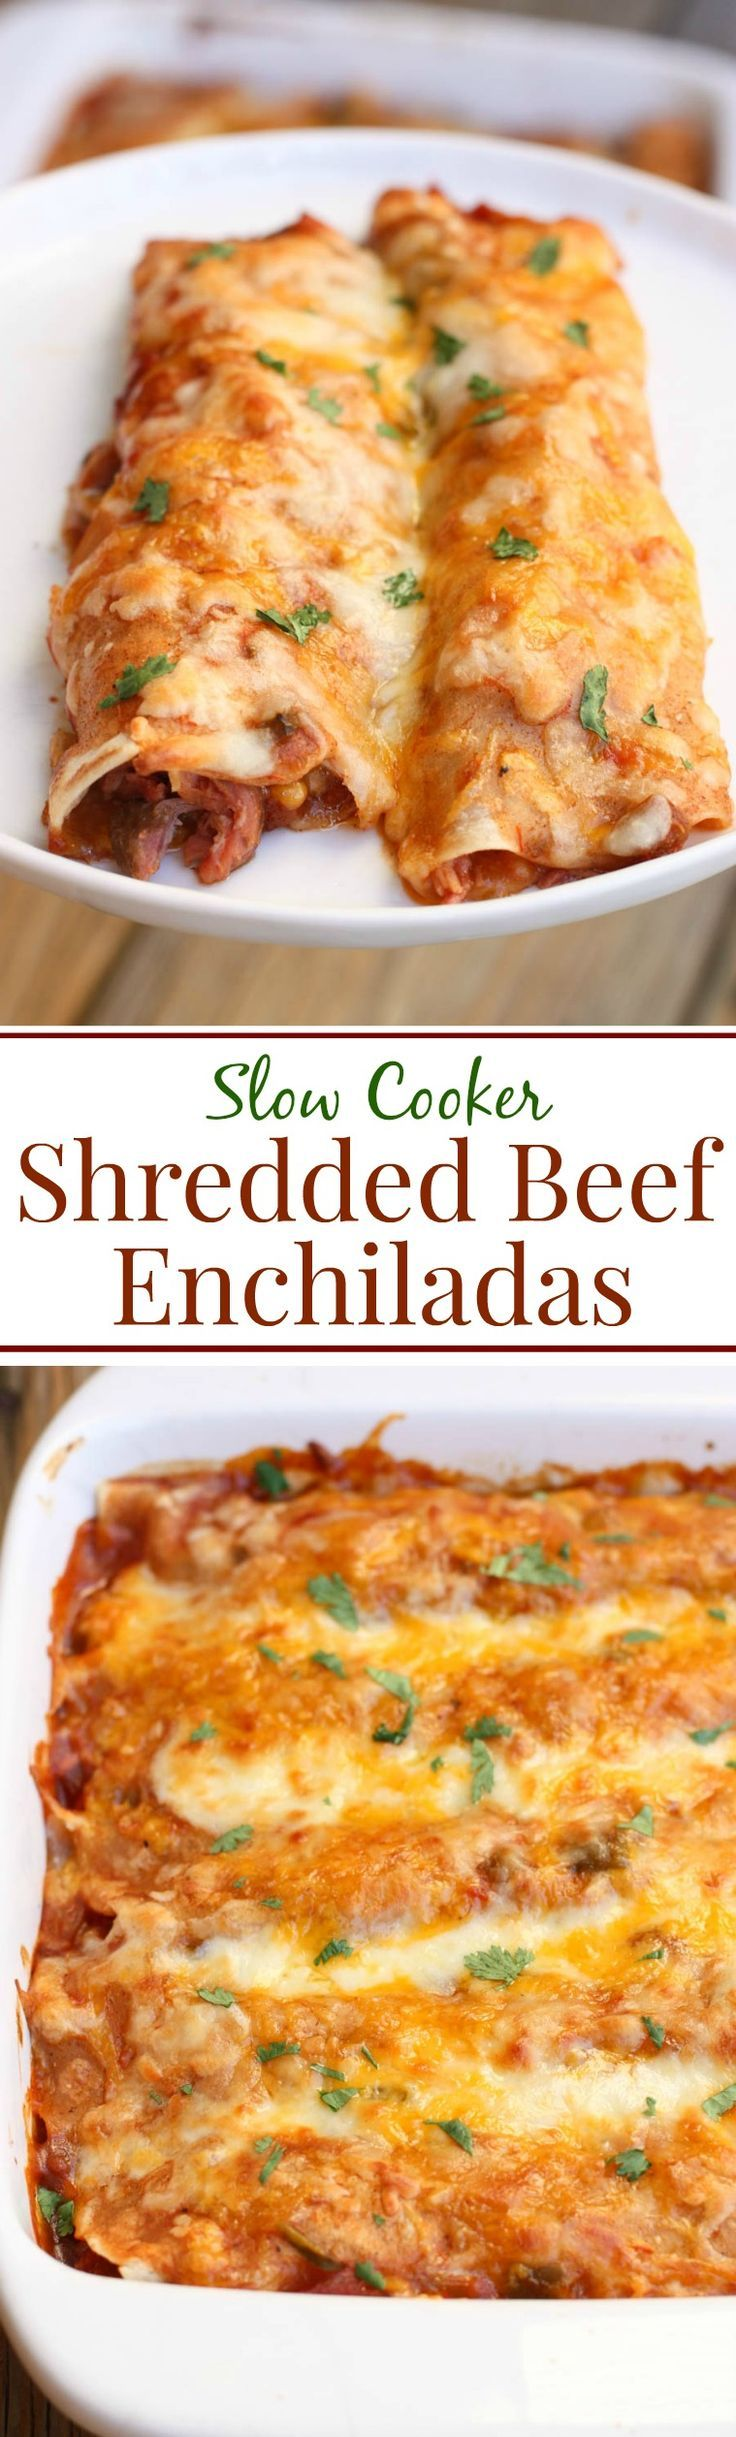 These easy Slow Cooker Shredded Beef Enchiladas are a family favorite!